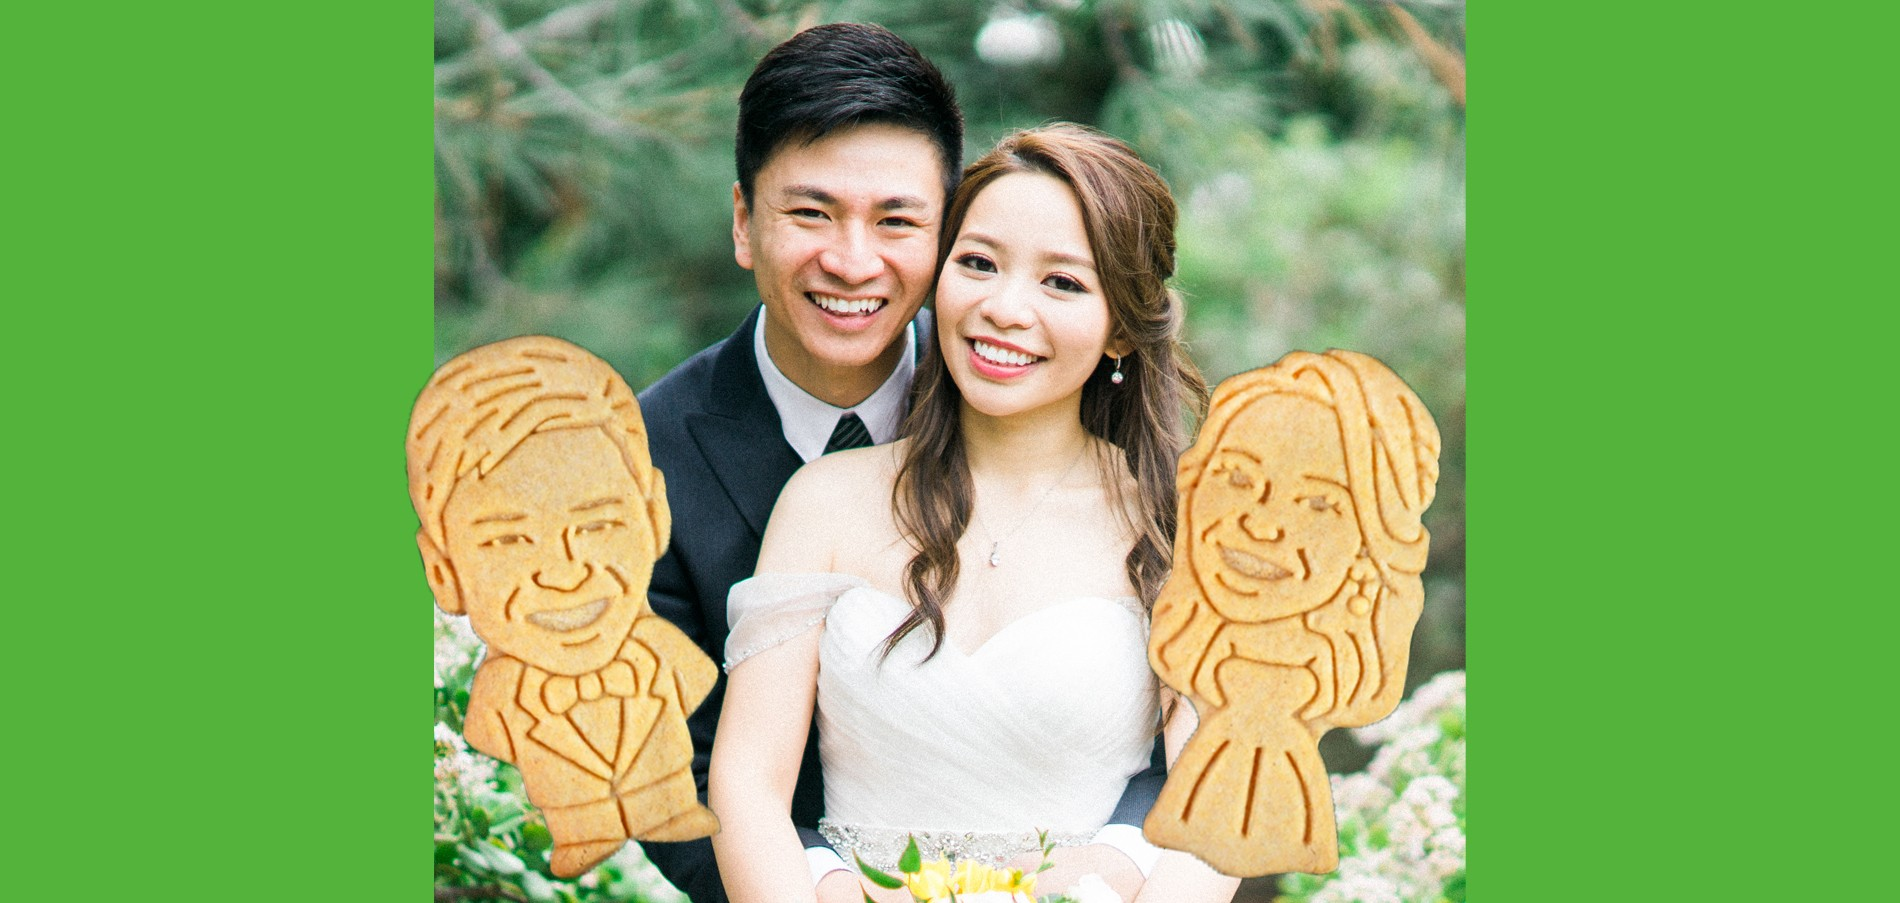 Custom Wedding coookies